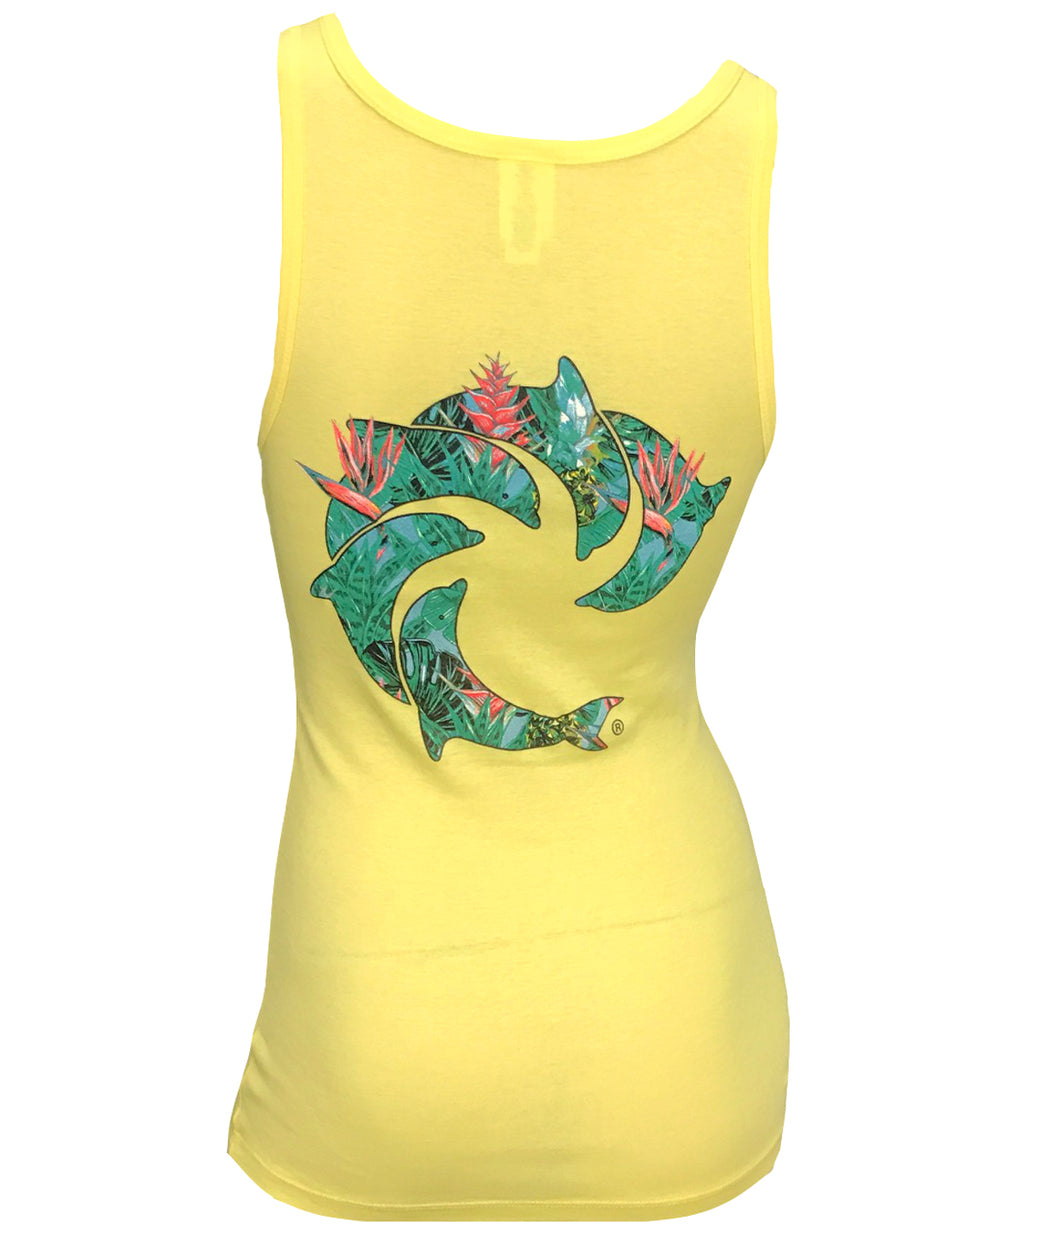 LADIES BIRD OF PARADISE TANK